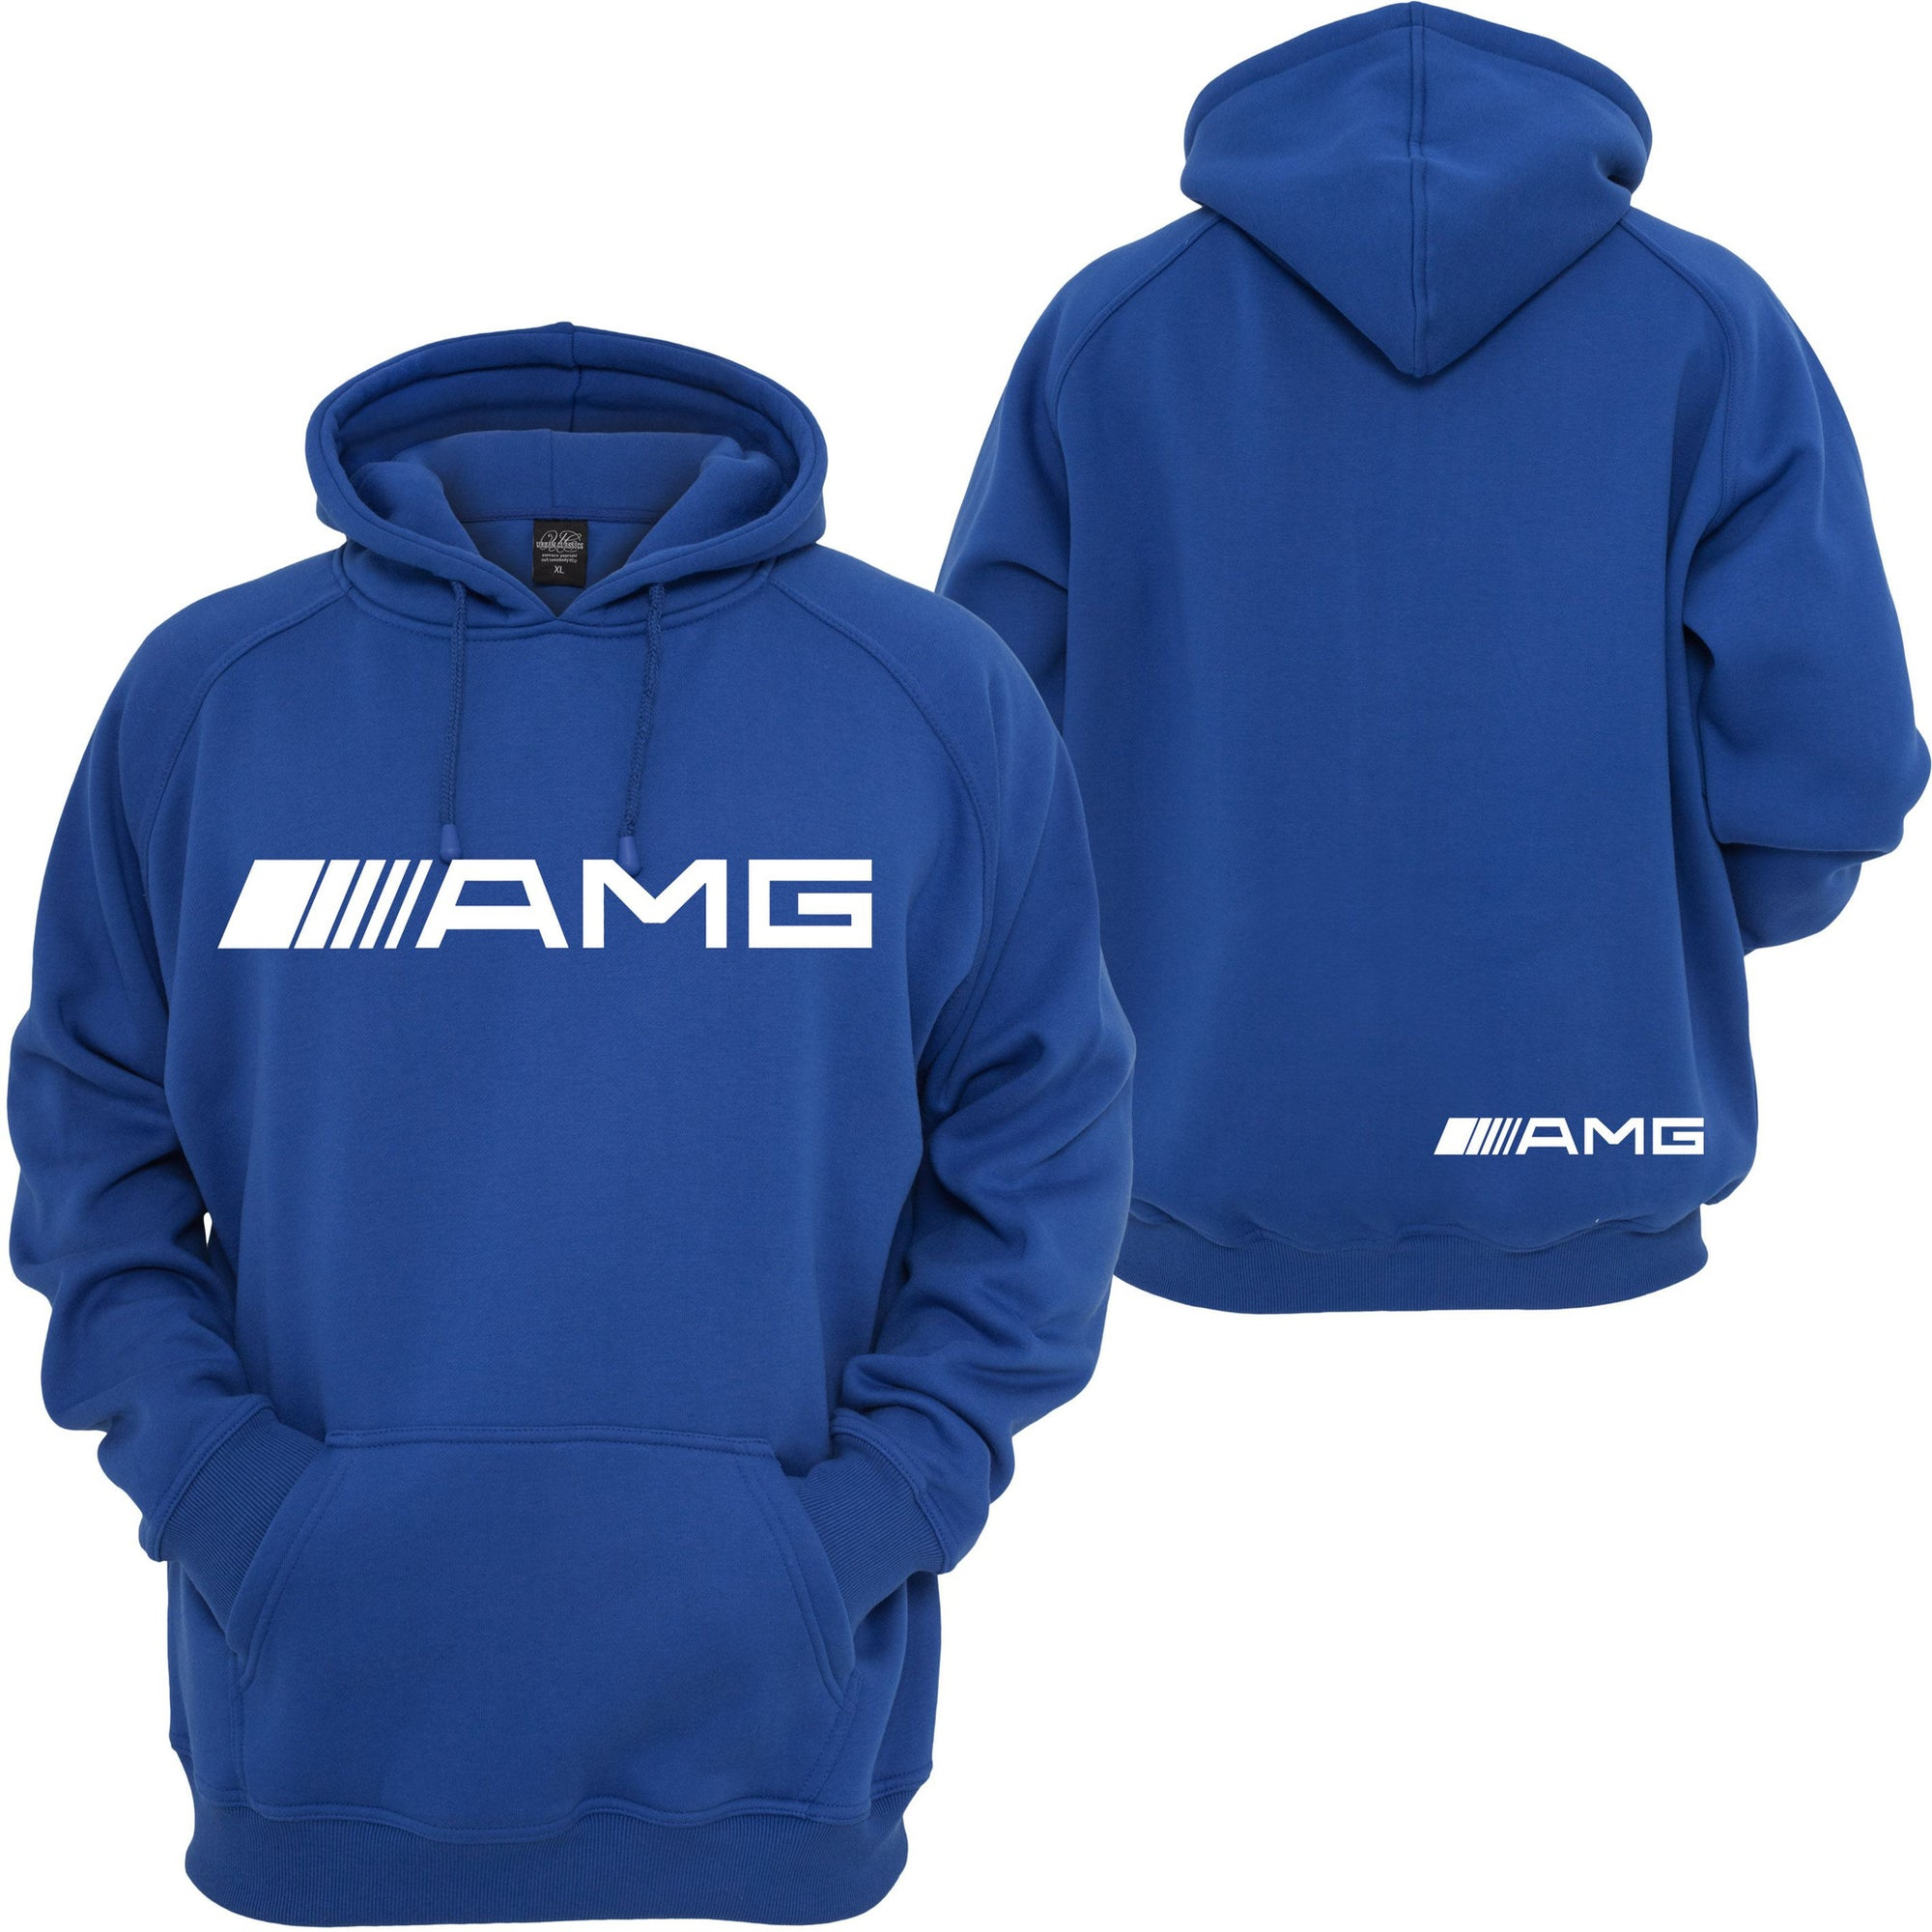 amg mercedes hoodie bmw mercedes benz petronas boost sti jdm pullover customteezpdx. Black Bedroom Furniture Sets. Home Design Ideas